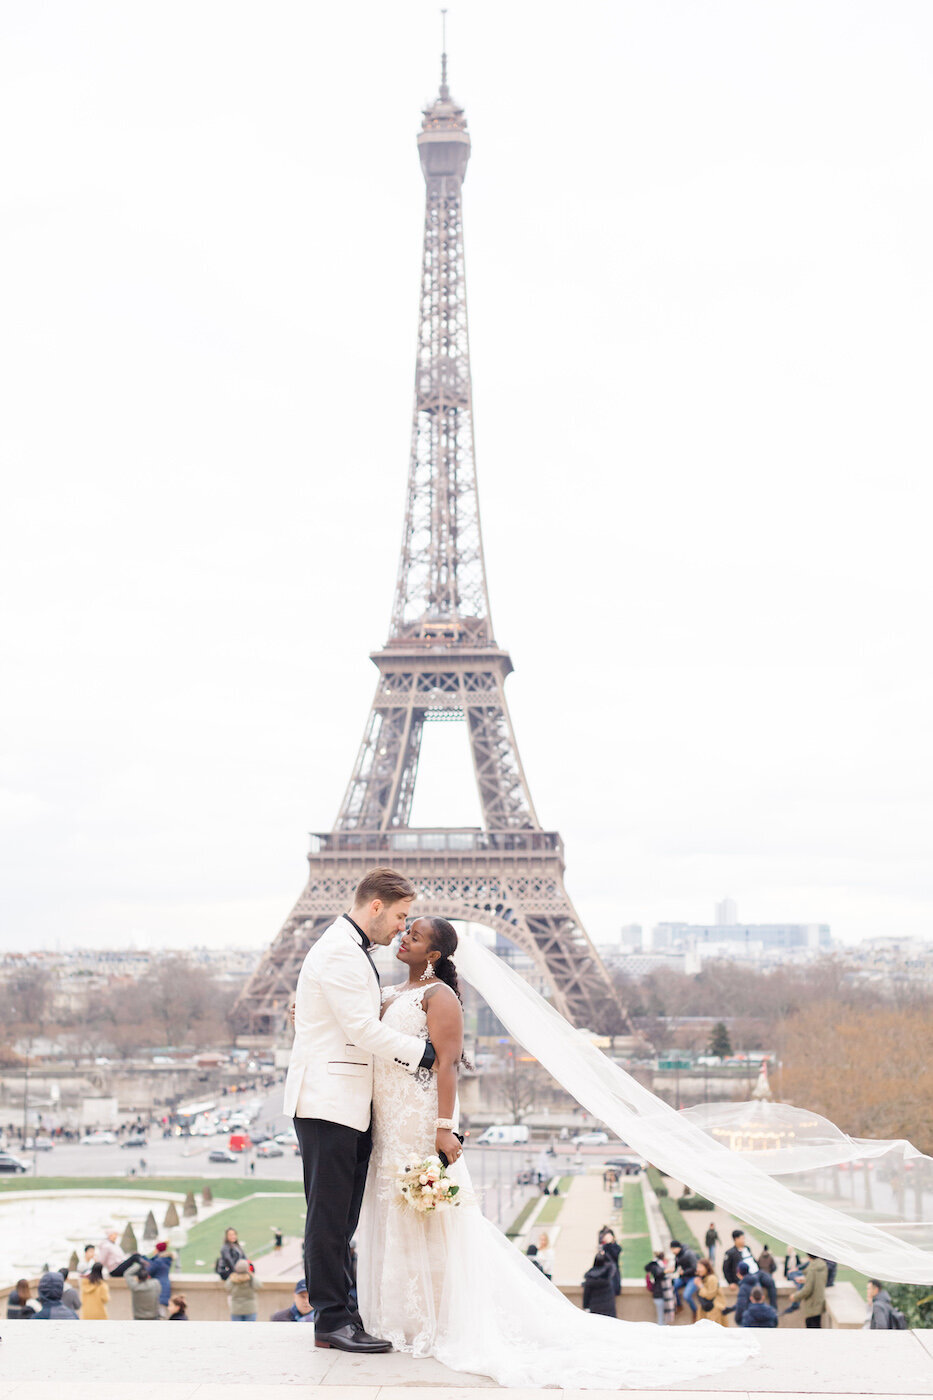 Layla+Kyle Winter Paris Eiffle Tower Wedding-6397